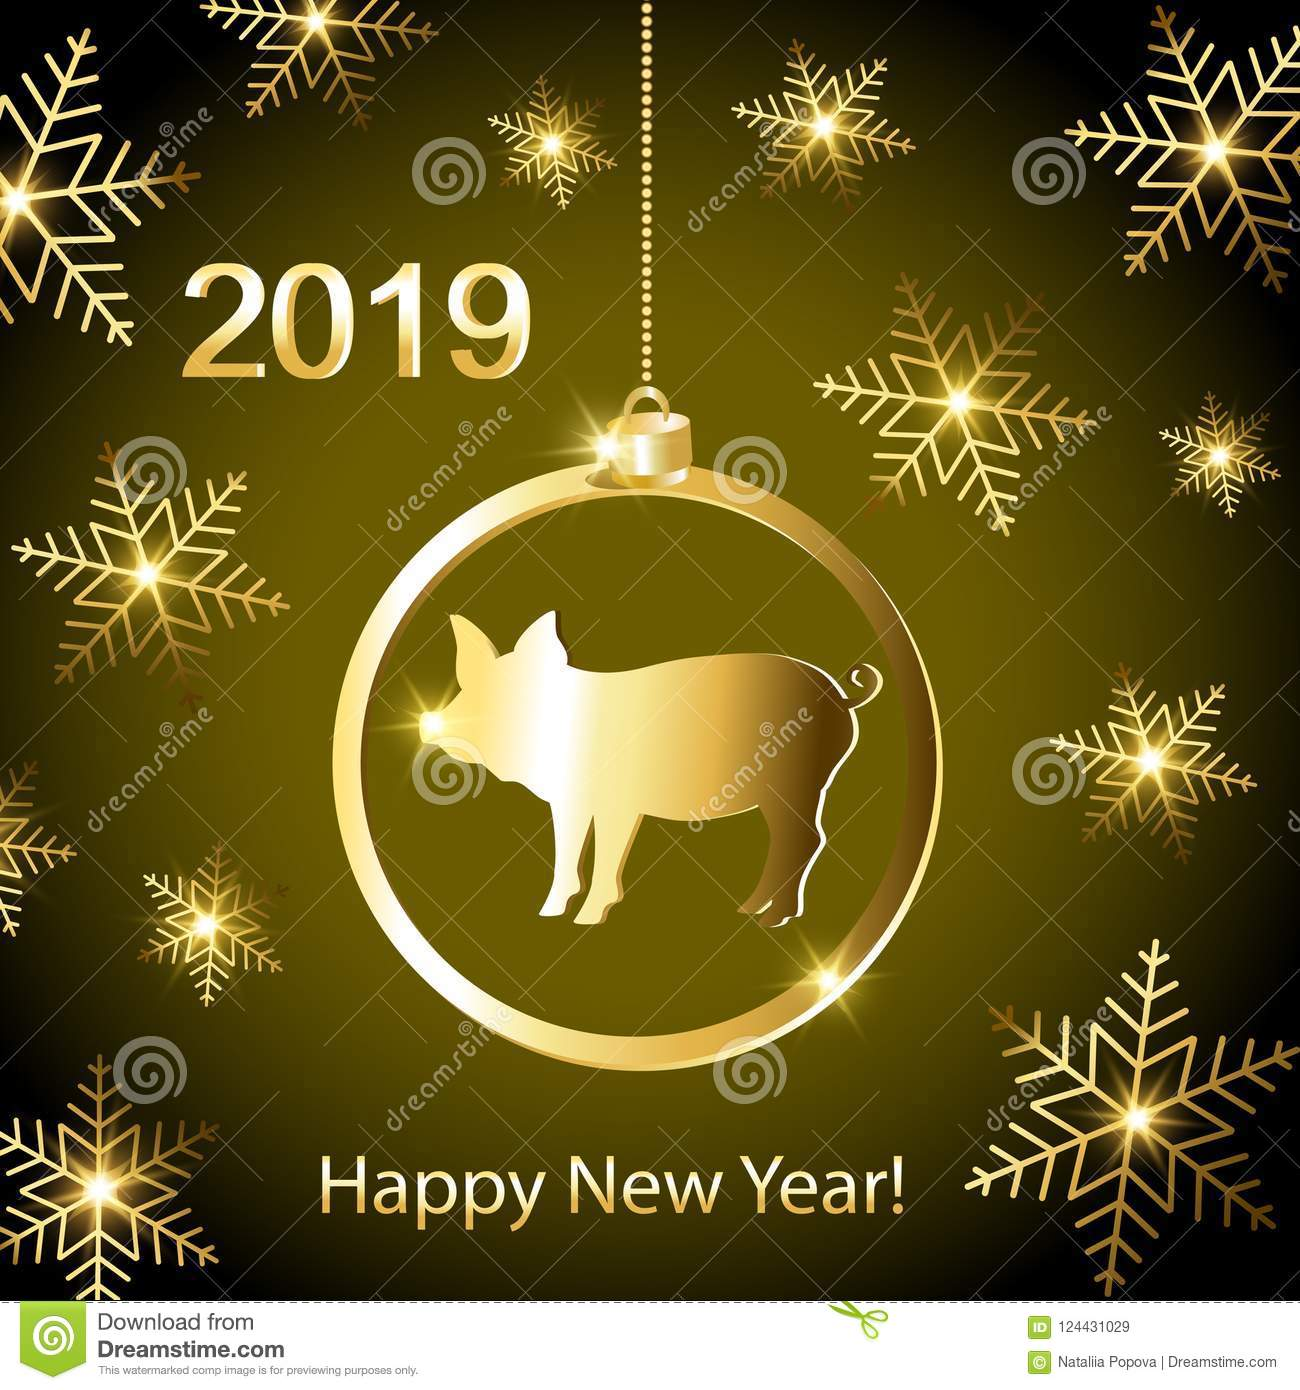 Greeting cards with a new year of the pig stock illustration download greeting cards with a new year of the pig stock illustration illustration of abstract m4hsunfo